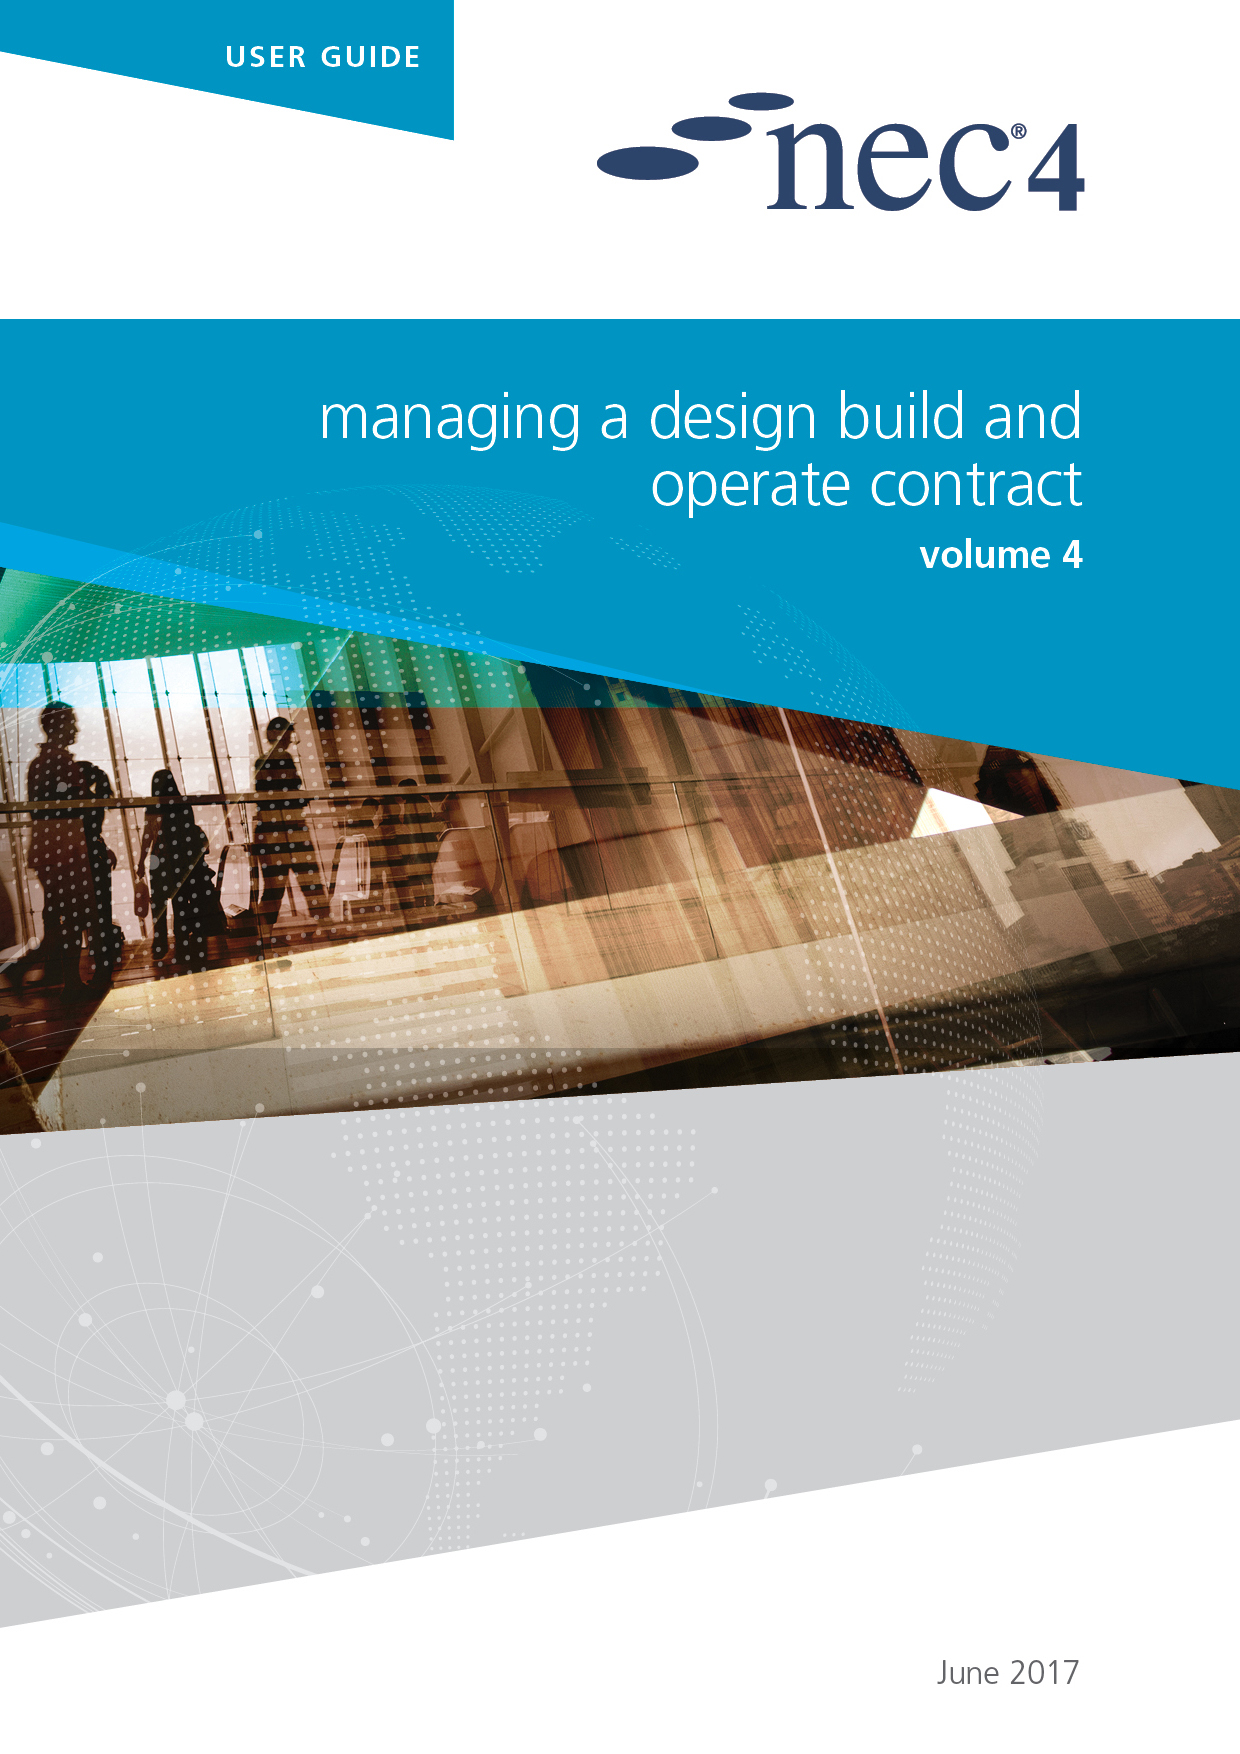 NEC4: Managing a Design, Build and Operate Contract